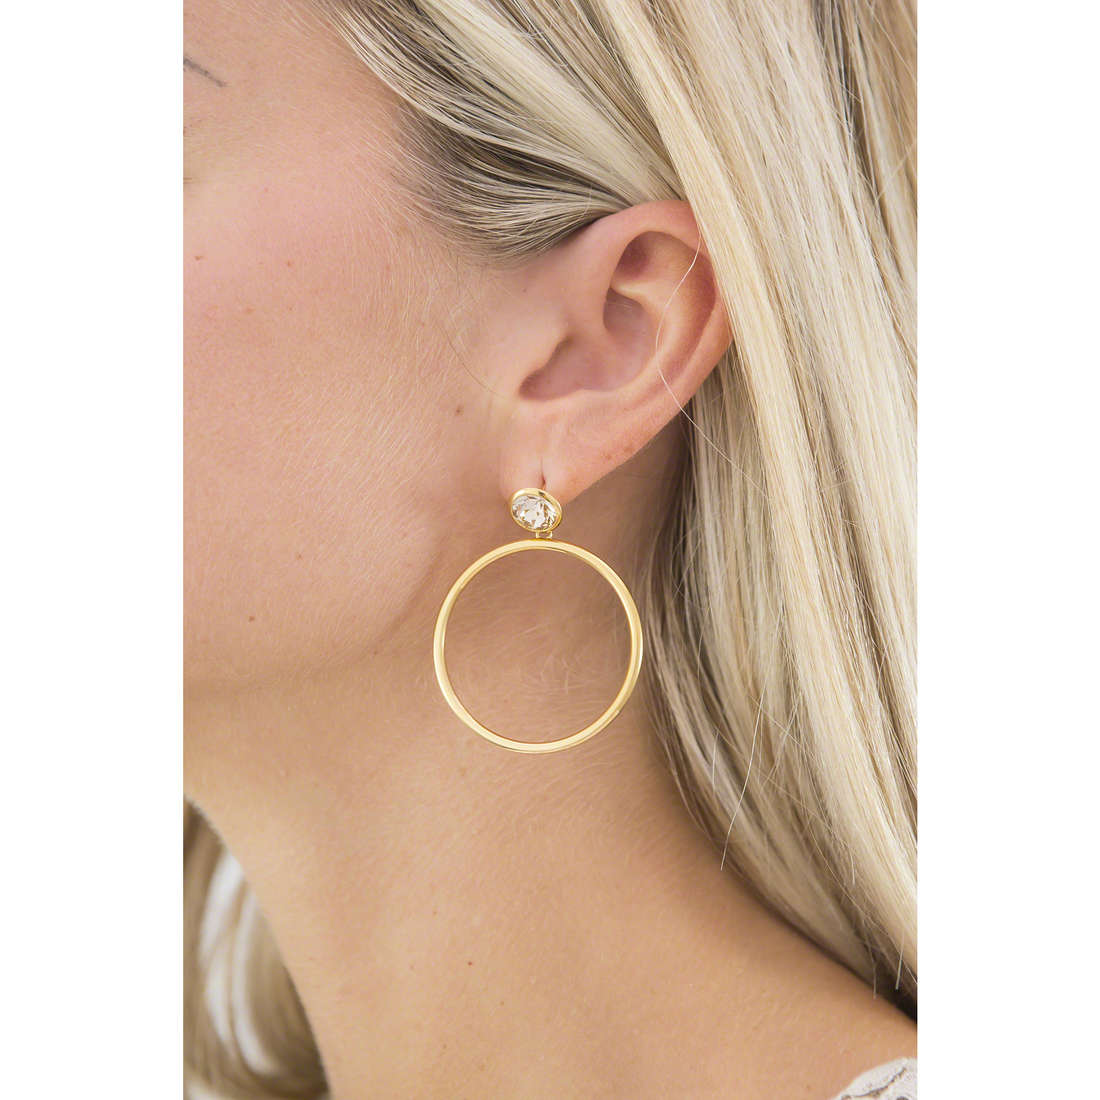 Brosway boucles d'oreille E-Tring femme BRT30 photo wearing